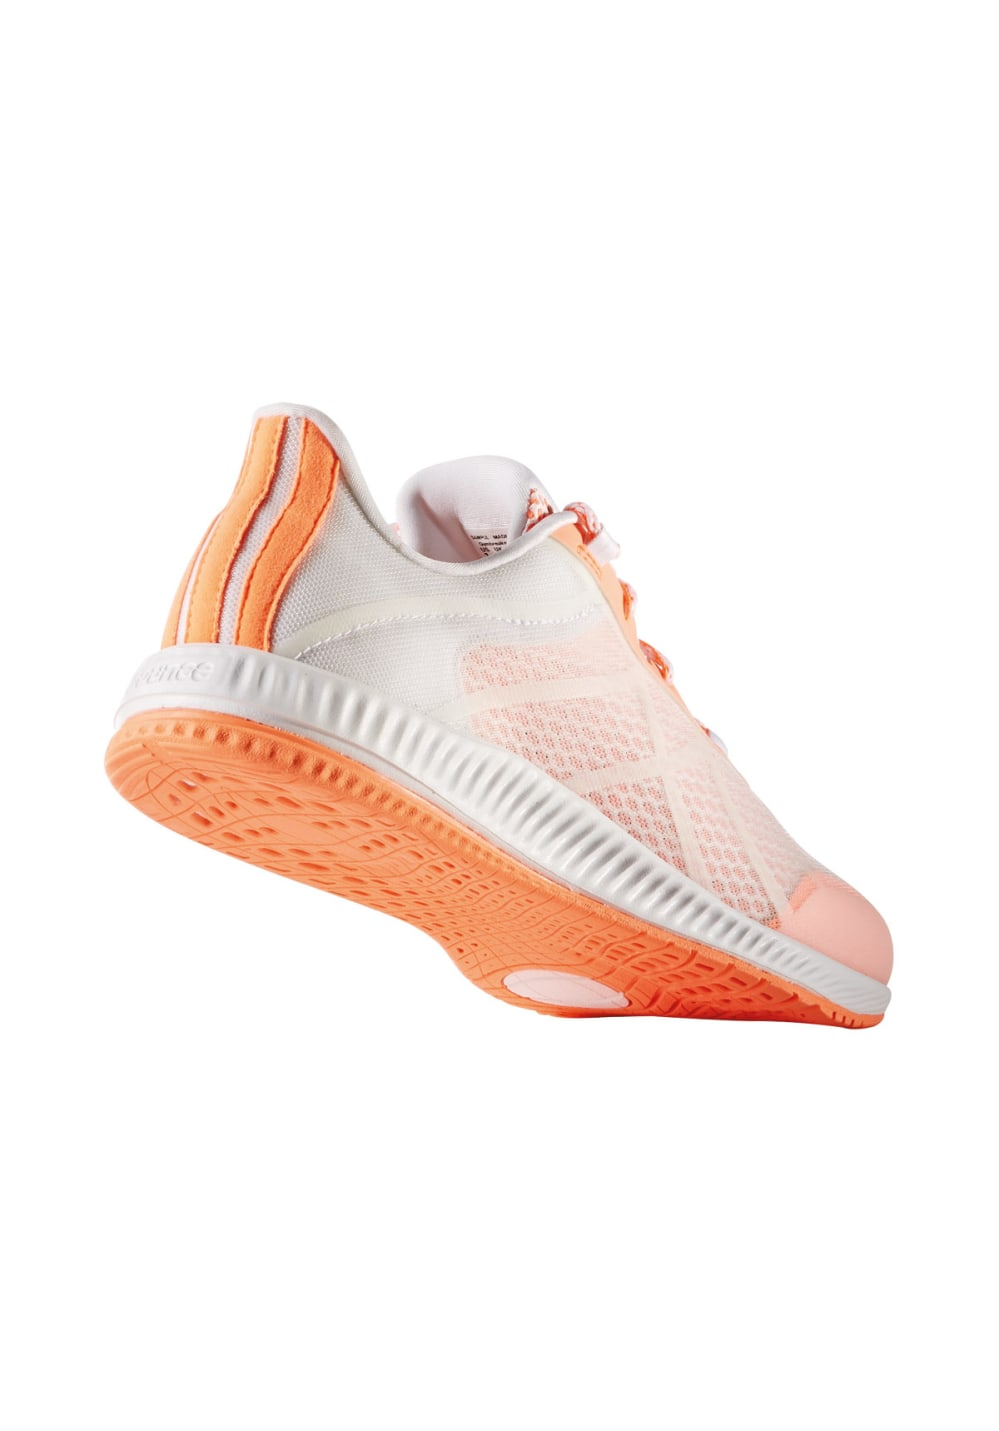 0401683f68100 Next. -45%. This product is currently out of stock. adidas. Gymbreaker  Bounce B - Fitness shoes for Women